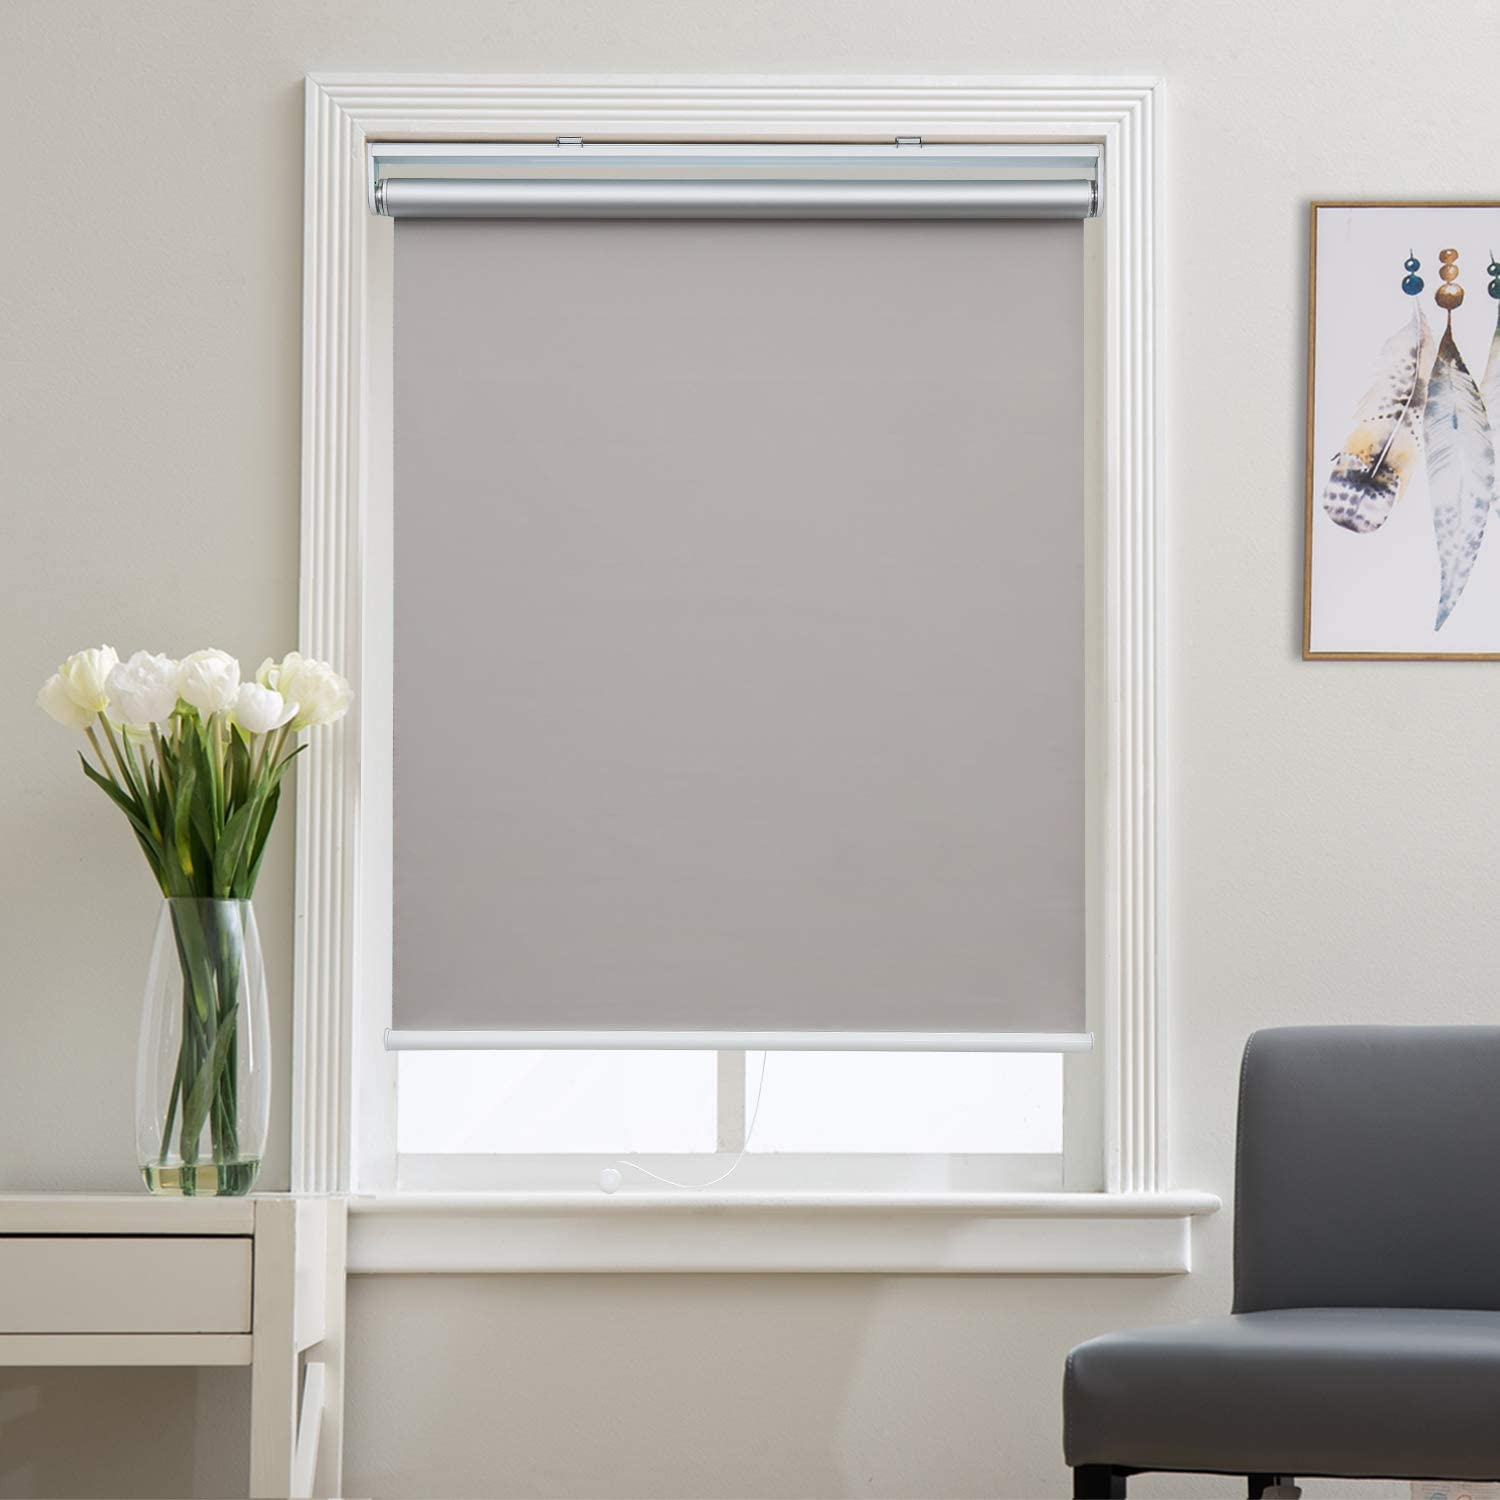 "Blackout Shades Roller Shade Window Blinds, Black Out 99% Light & UV, Thermal, Cordless and Easy to Pull Down & Up, Gray, 31"" W x 72"" H"